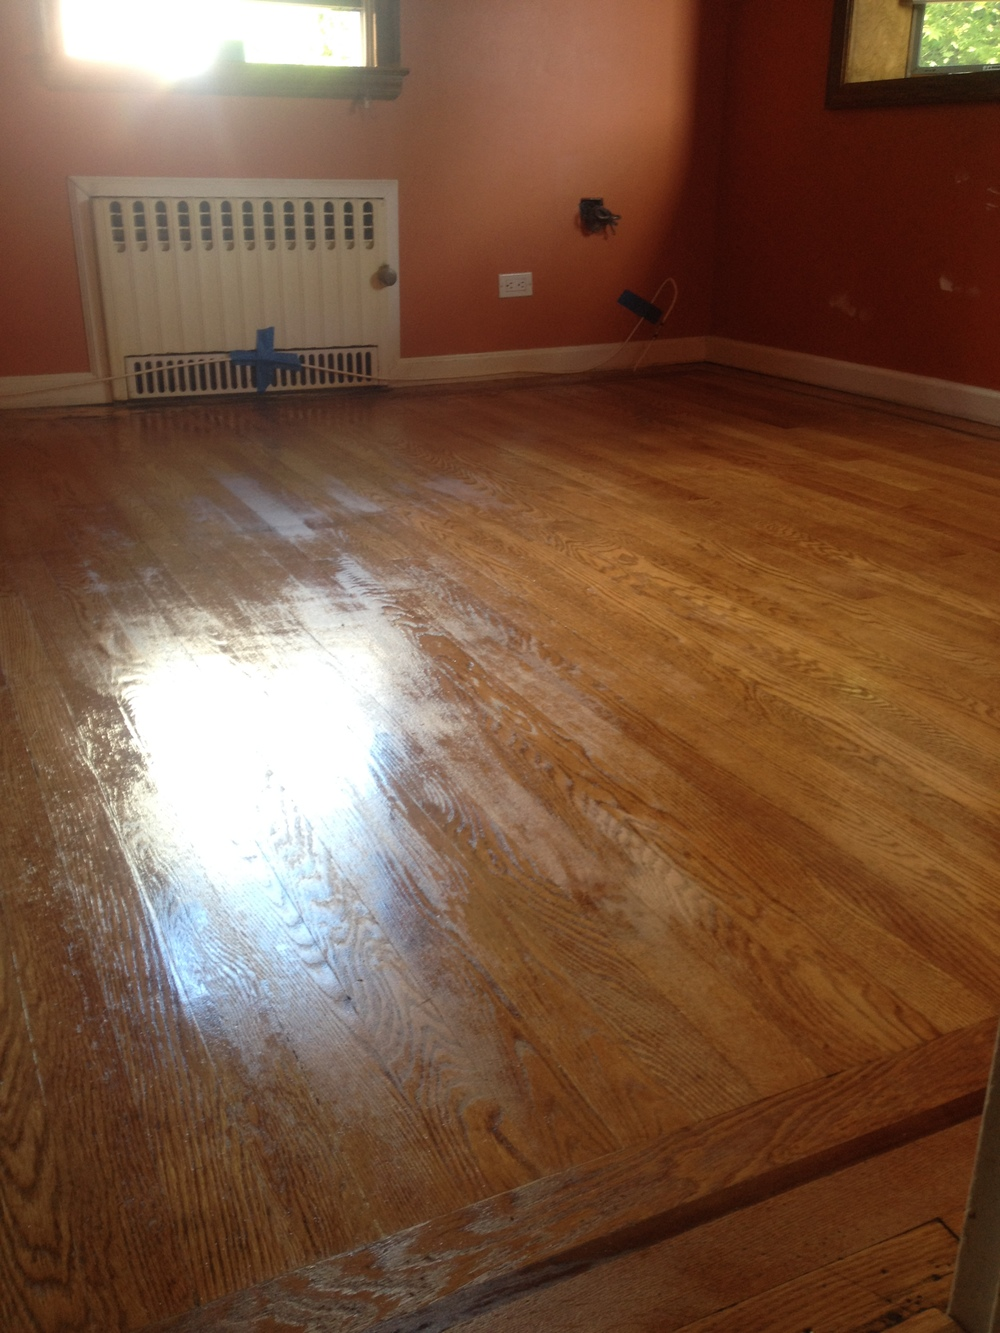 The wooden floor with the stain and sealant